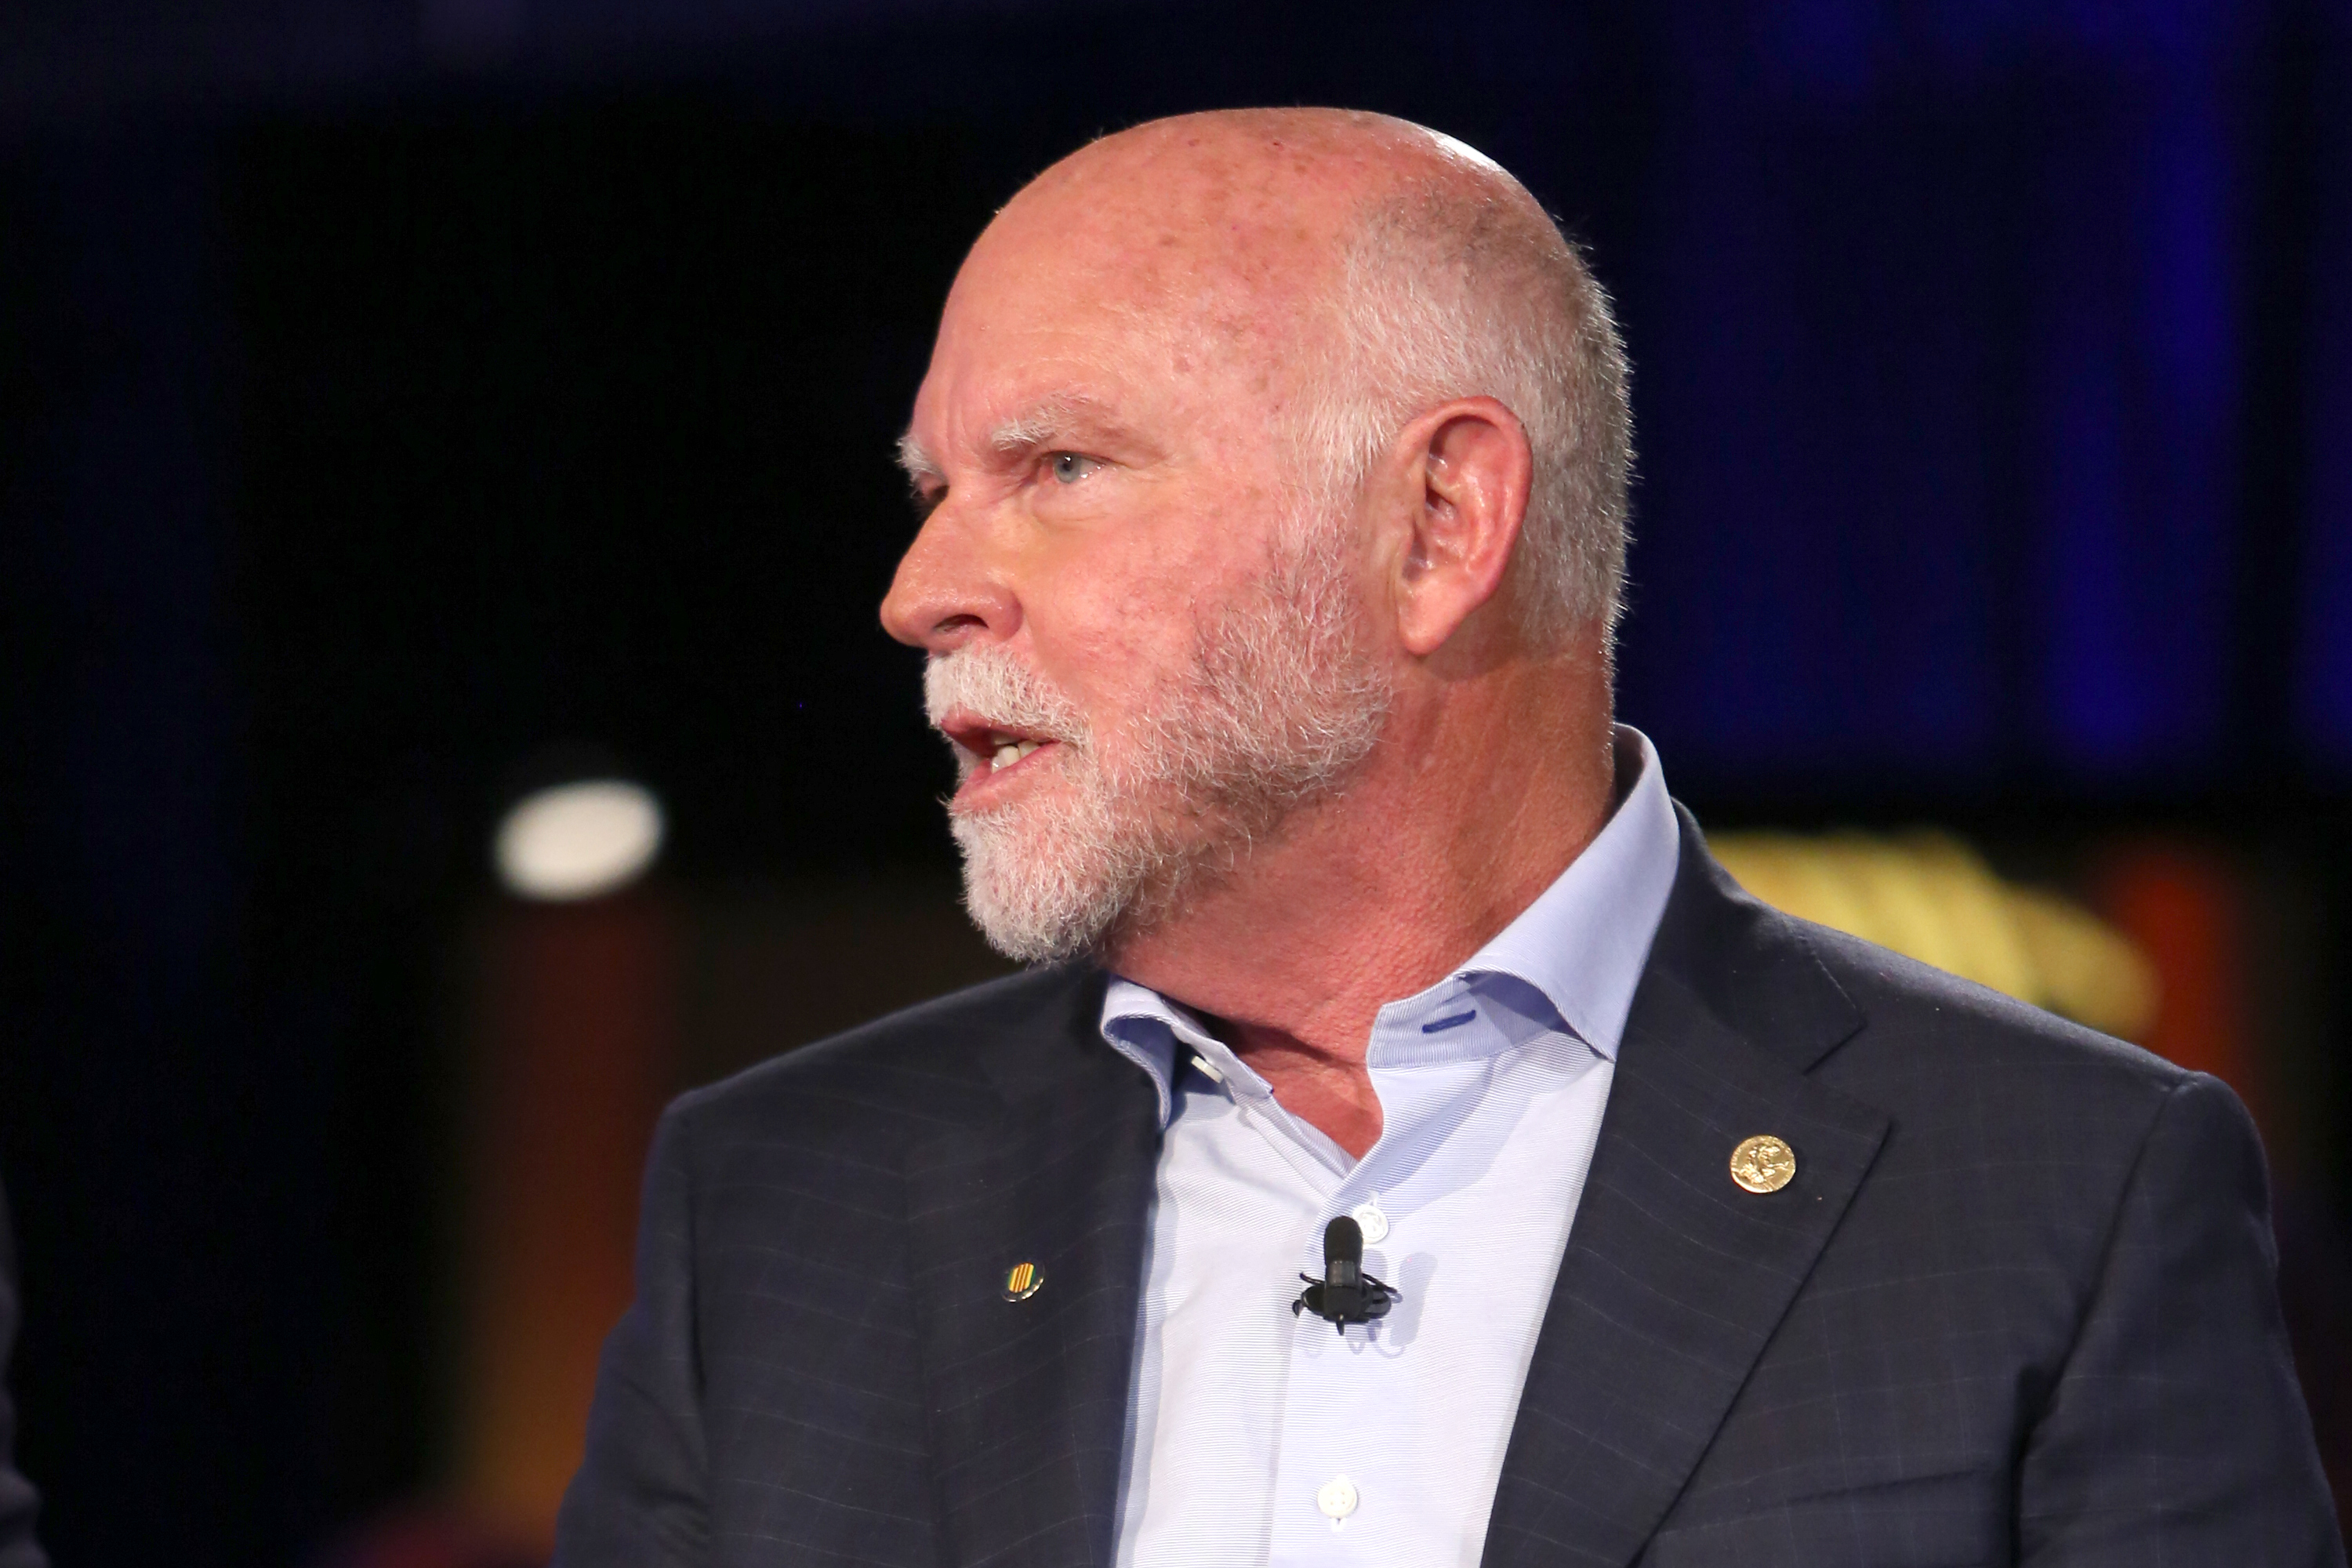 Craig Venter discusses human genome mapping and its impact on healthcare, in New York City on Sept. 29, 2015.